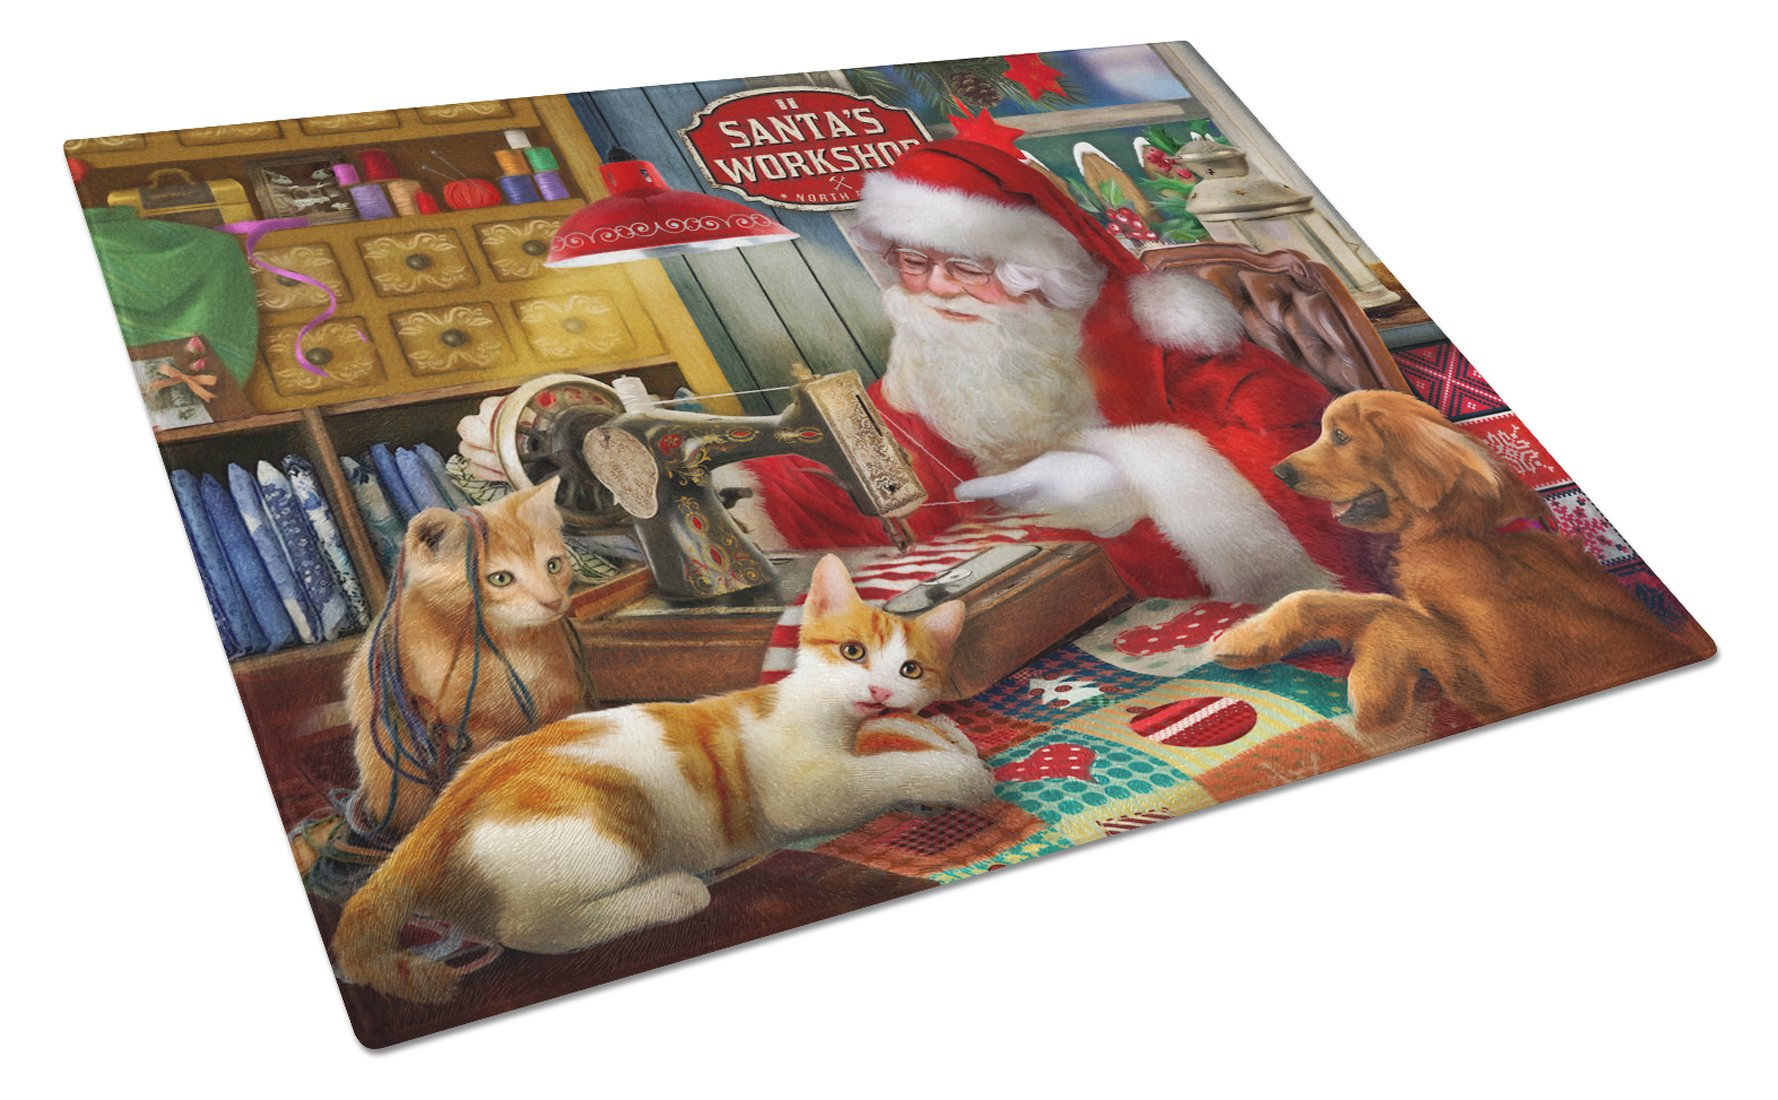 Santa's Workshop, Golden Retriever and Cats Glass Cutting Board Large PTW2067LCB by Caroline's Treasures